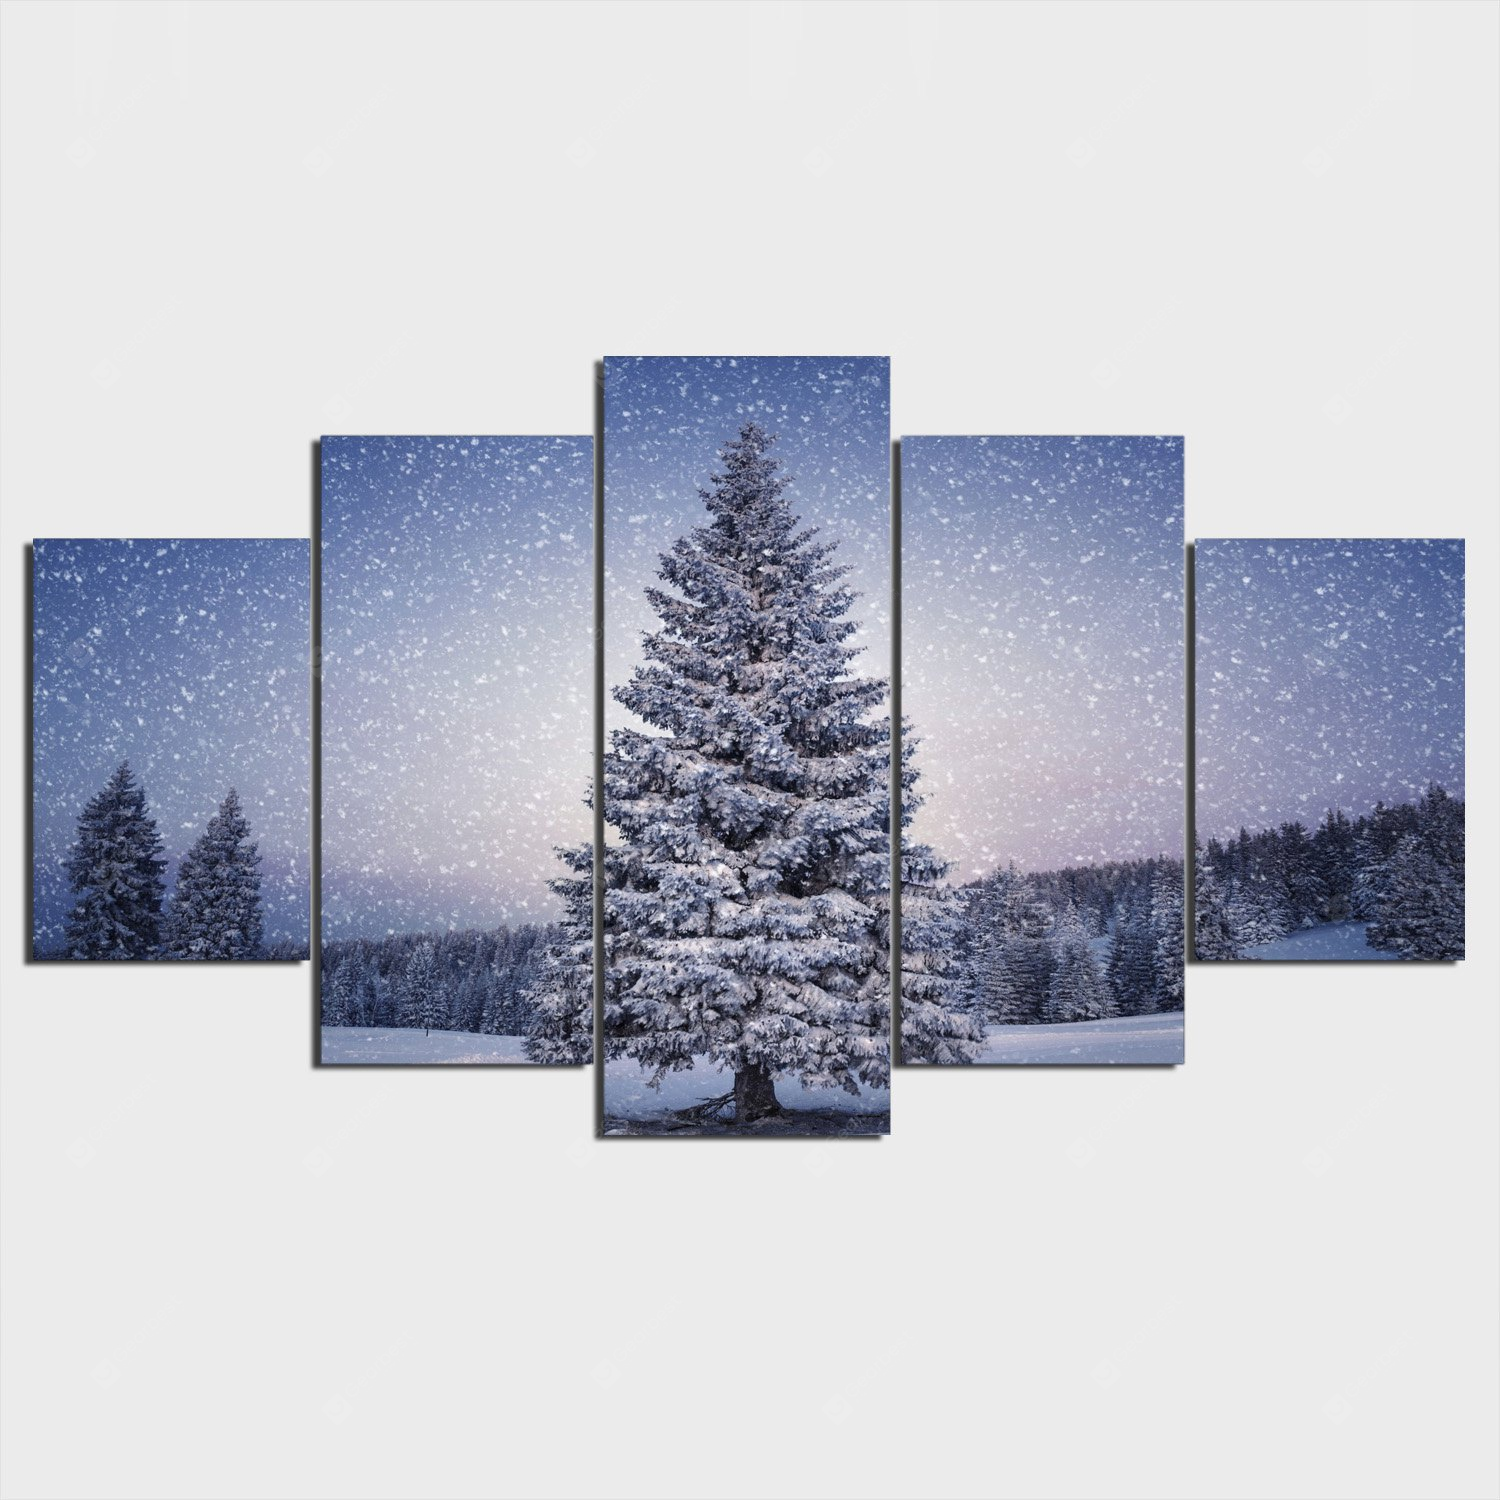 YSDAFEN Tree Winter Printing Canvas Wall Decoration COLORFUL